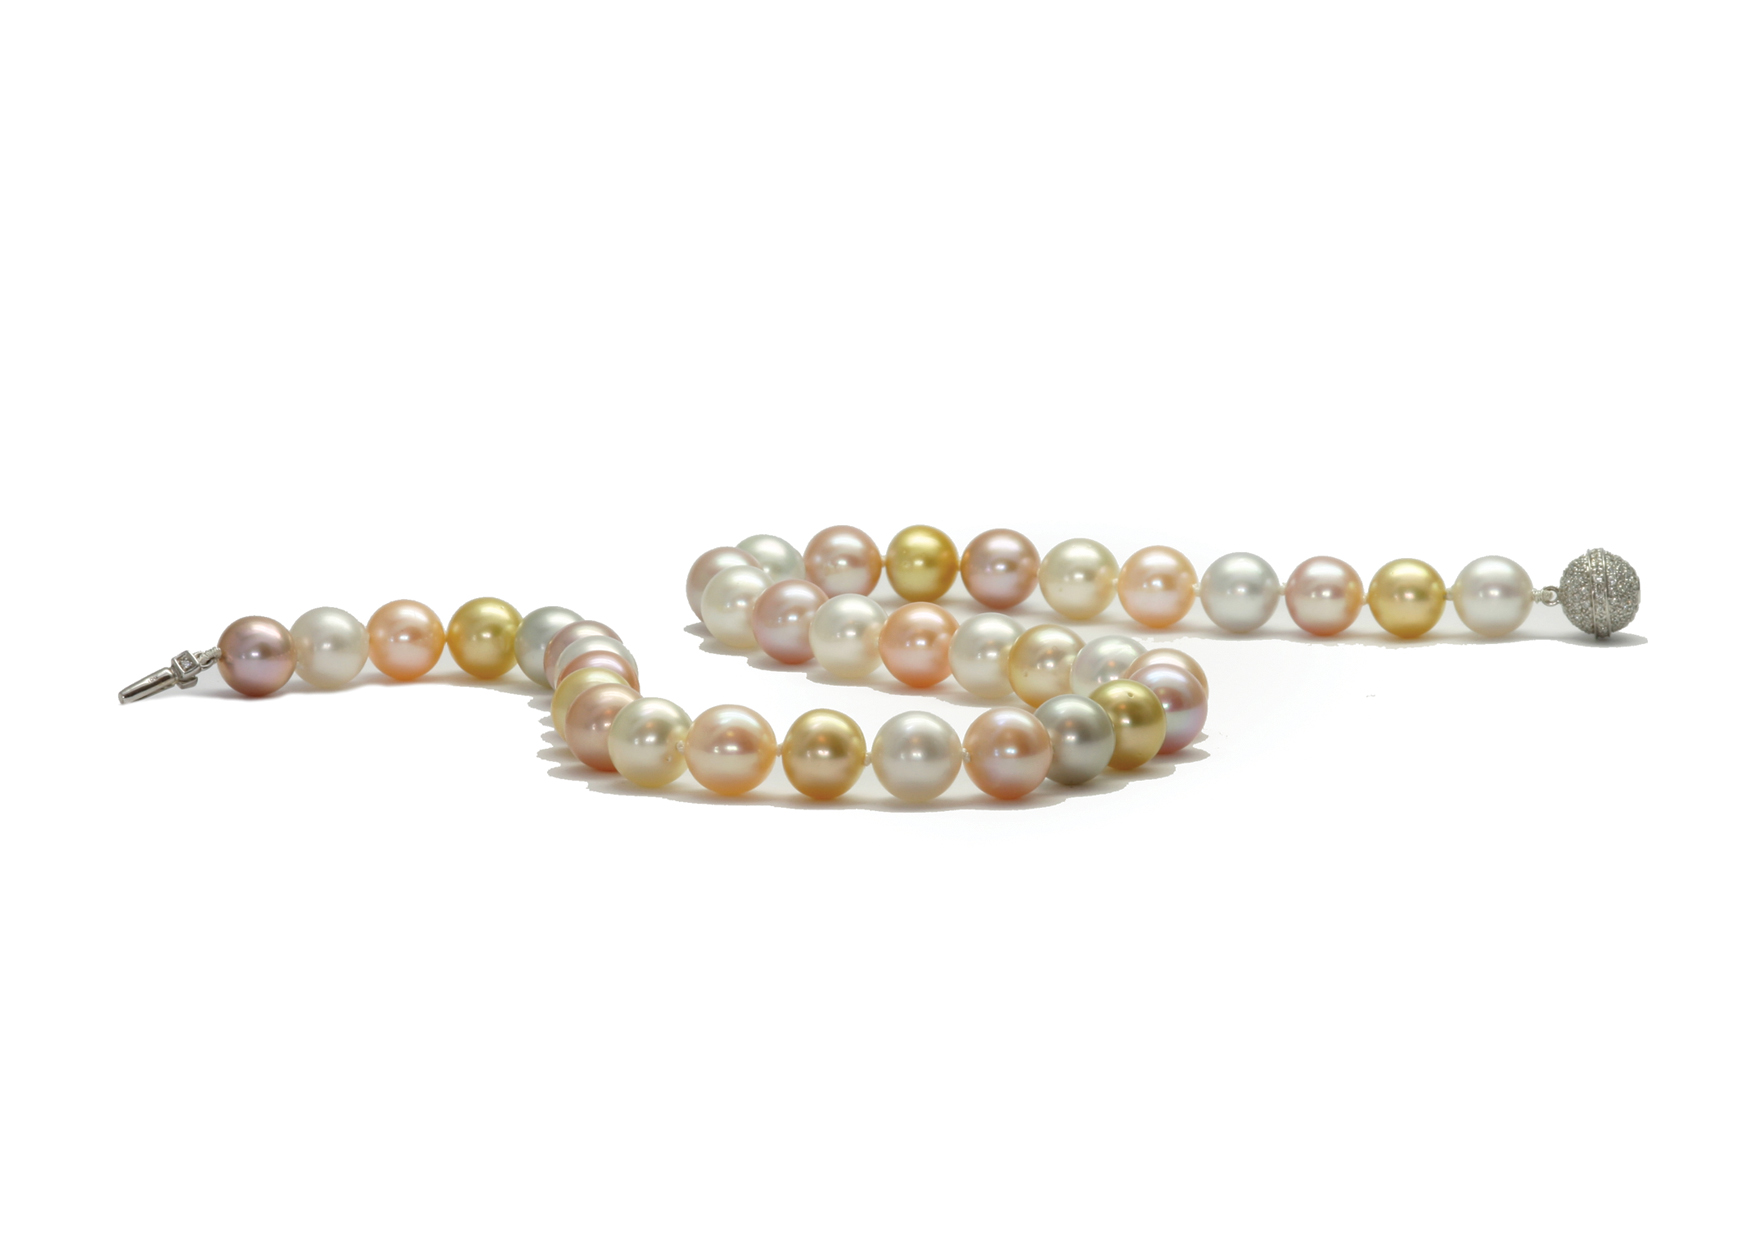 Freshwater & South Sea pearls on a 18 carat gold & diamond clasp